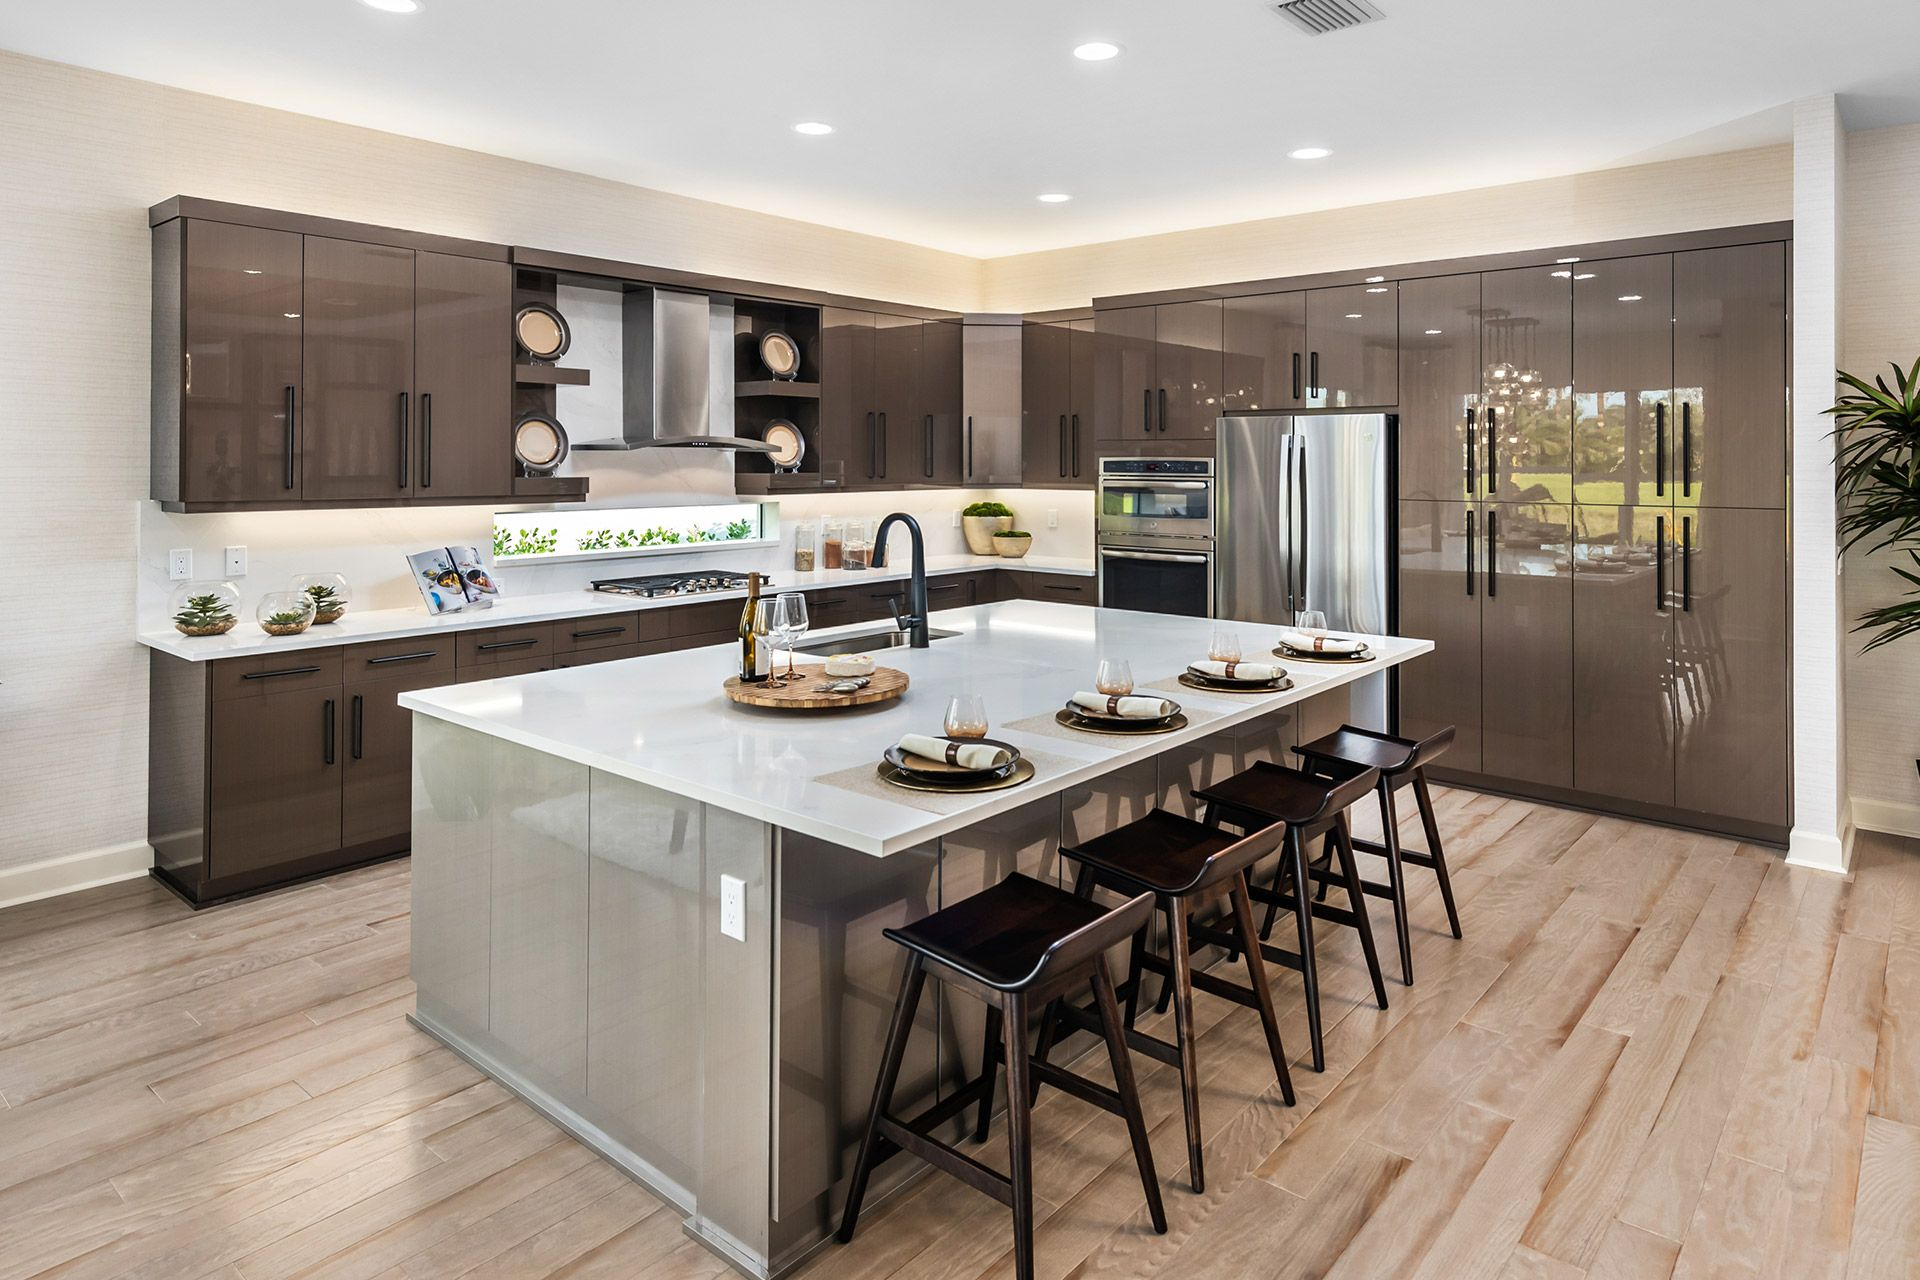 Kitchen featured in the Seabreeze By GL Homes in Naples, FL